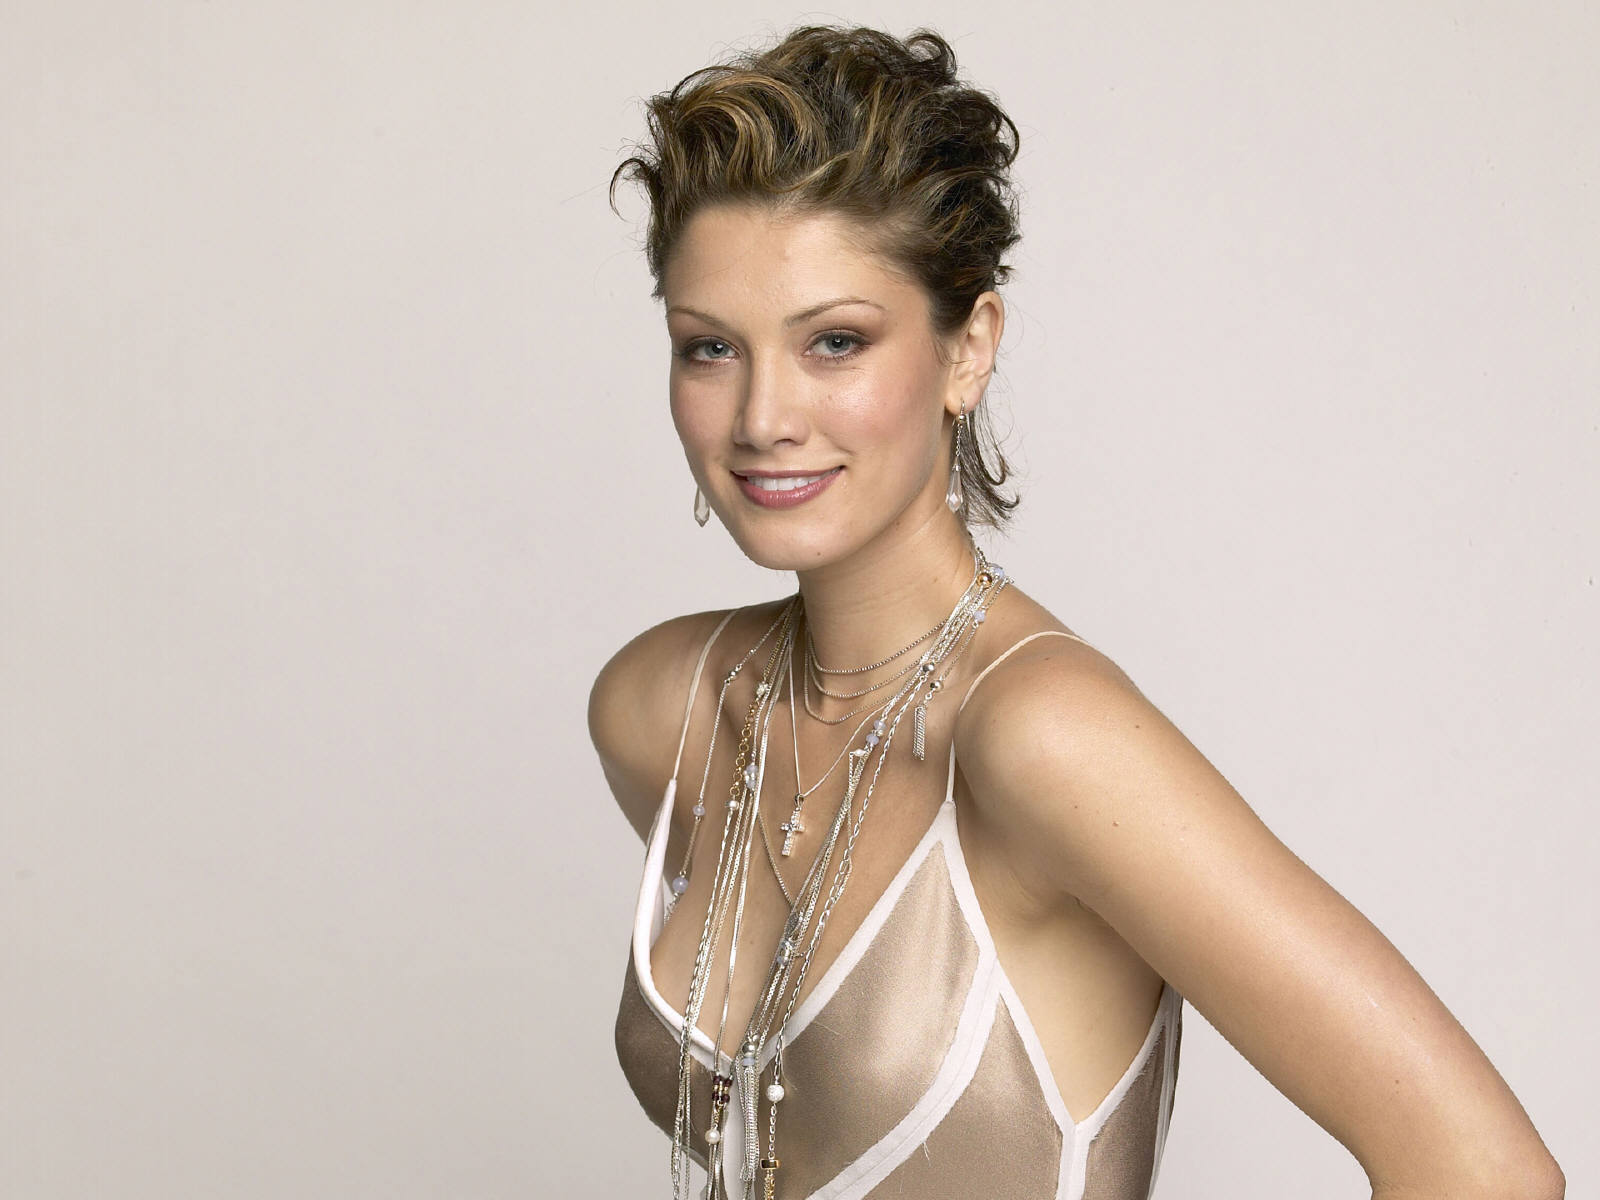 Delta Goodrem   FEMALE CELEBRITY